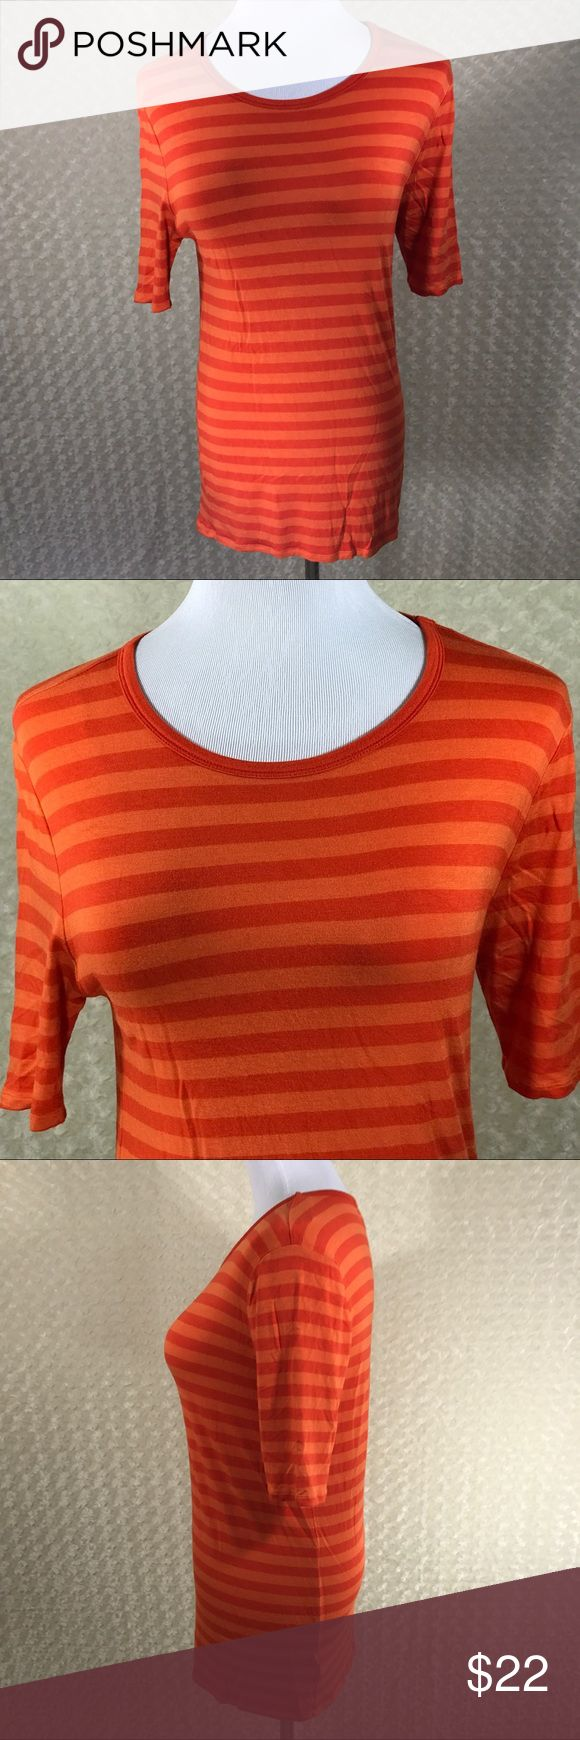 "Michael Kors Size M Red Orange Striped Top Michael Kors Size M Red and Orange Striped Short Sleeve Top  This item is gently used with no flaws. — see pictures for details Armpit to Armpit - 18"" Length from back of neck to Bottom - 26"" Sleeve Length - short sleeve Made in China Material is 95% Rayon, 5% Spandex  Inventory - E535 Michael Kors Tops Blouses"